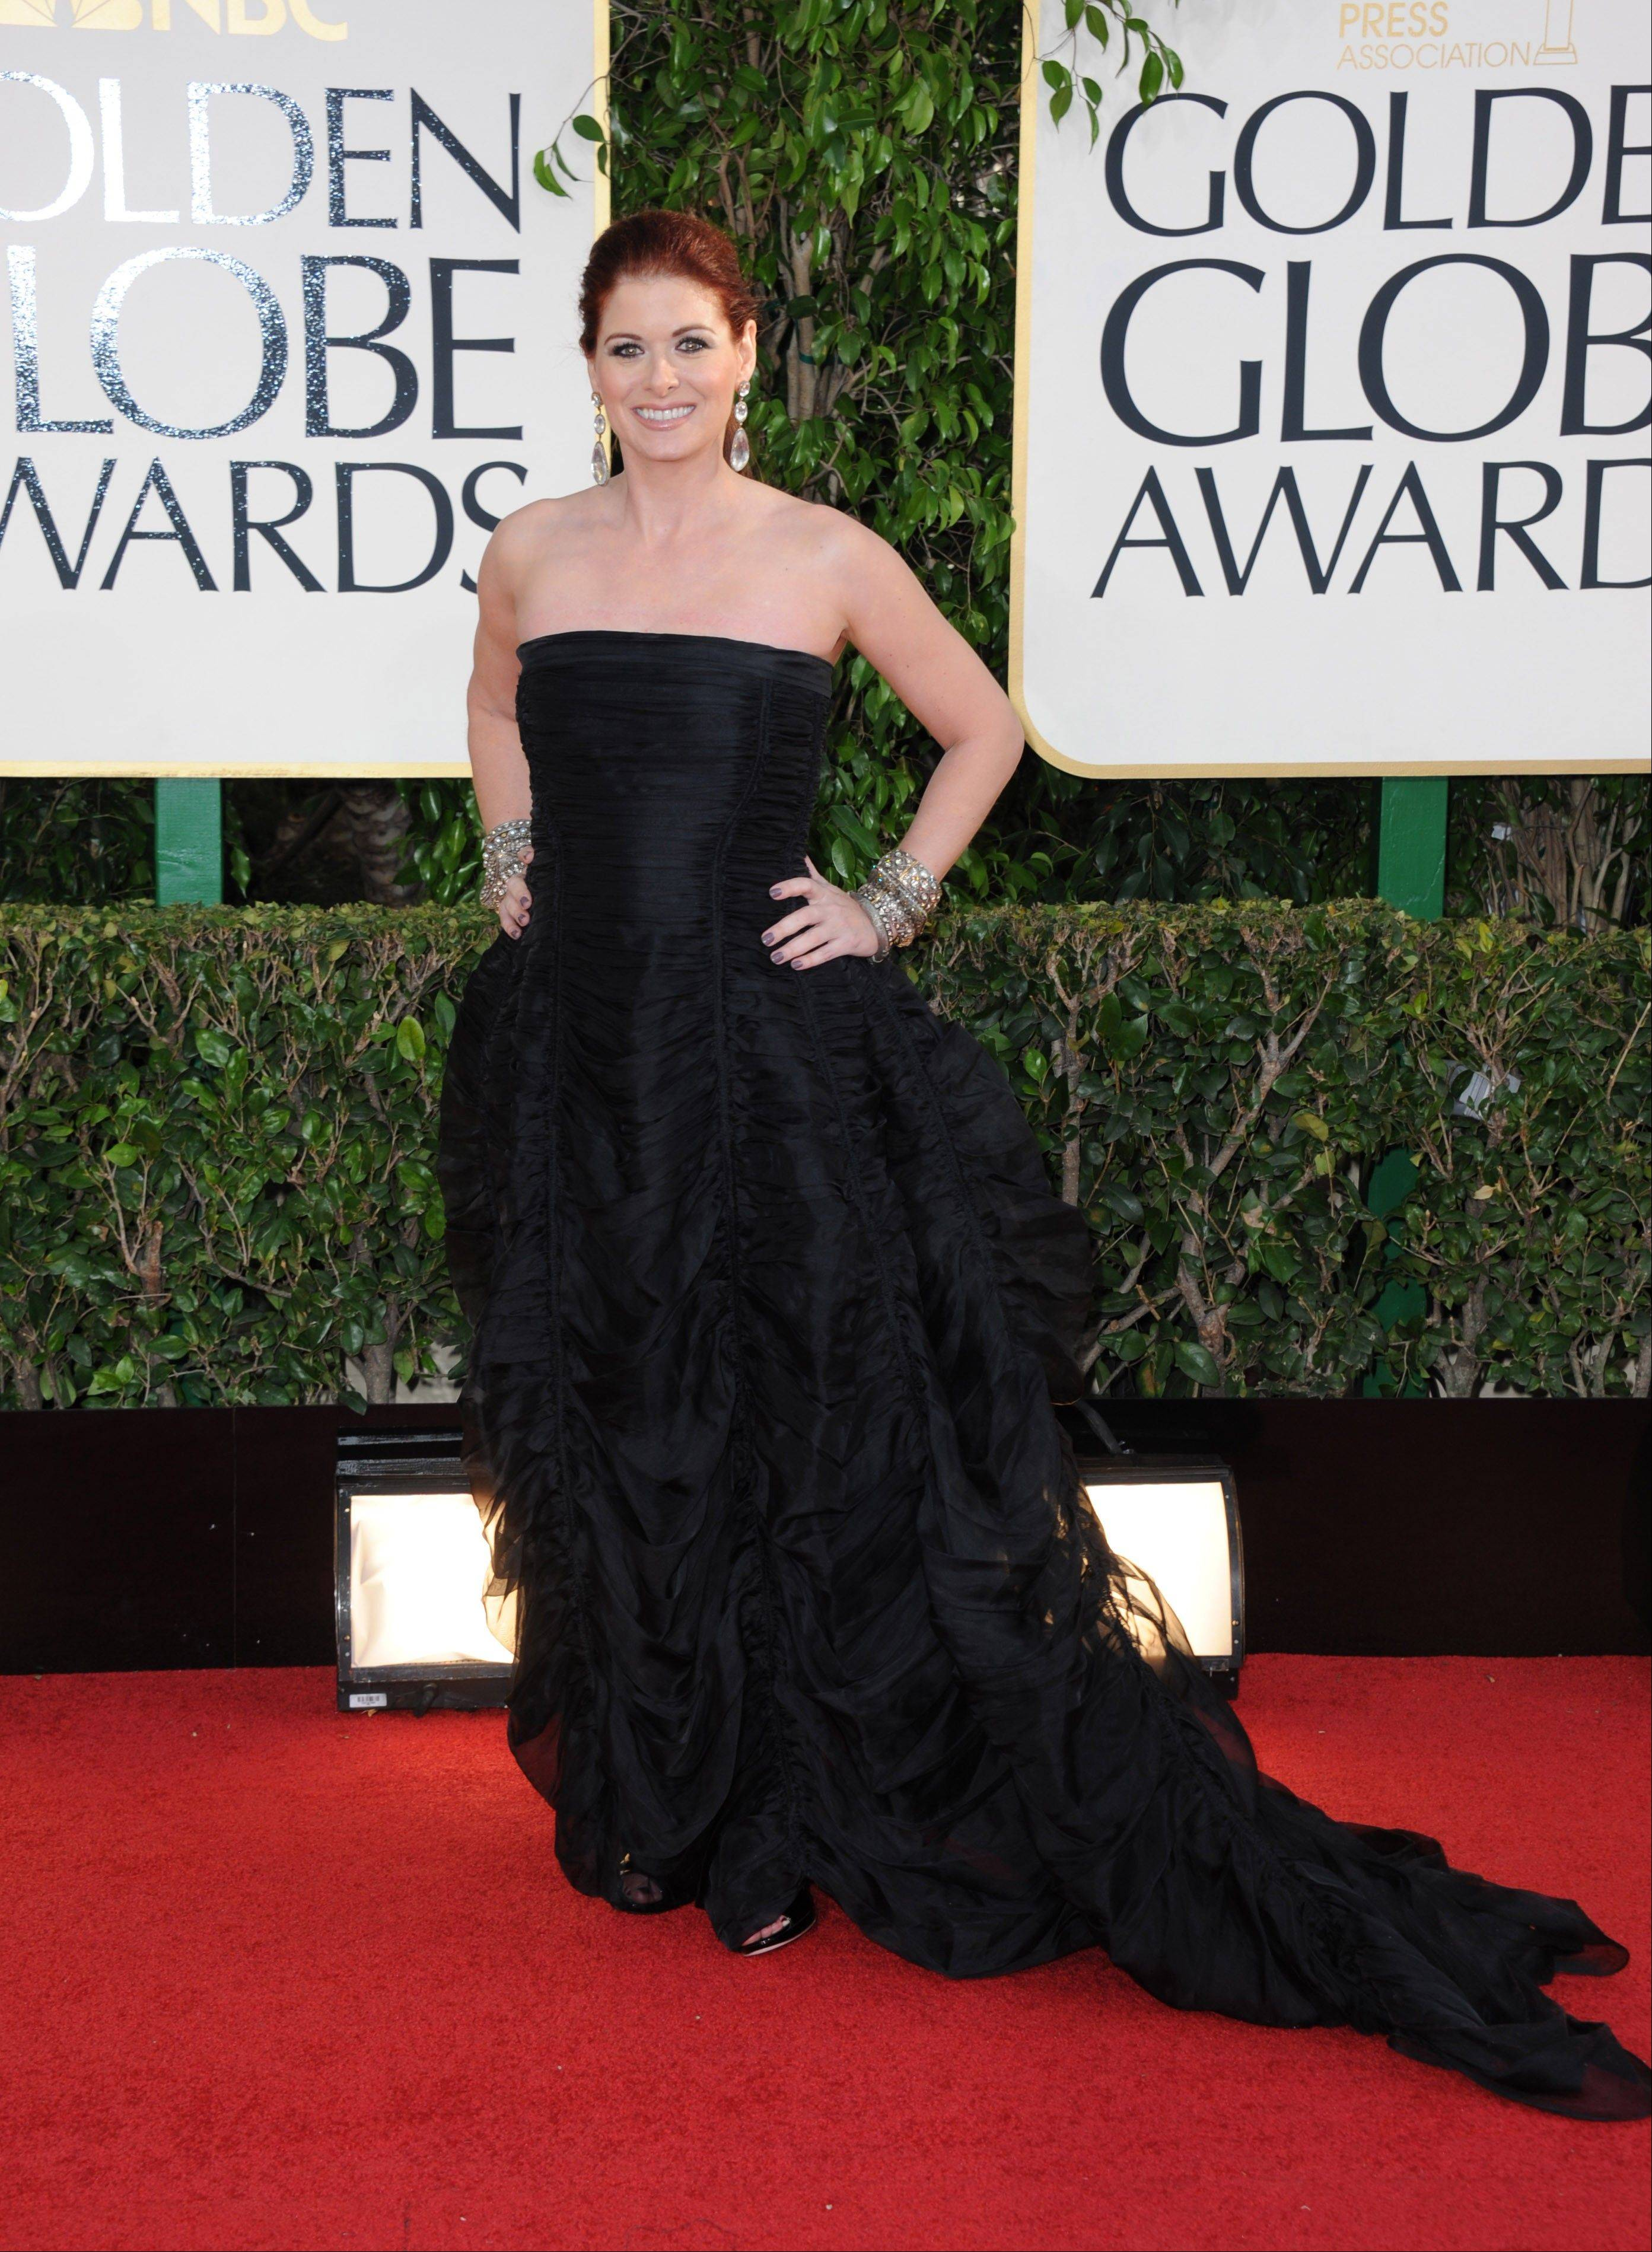 Actress Debra Messing arrives at the 70th Annual Golden Globe Awards at the Beverly Hilton Hotel on Sunday Jan. 13, 2013, in Beverly Hills, Calif.